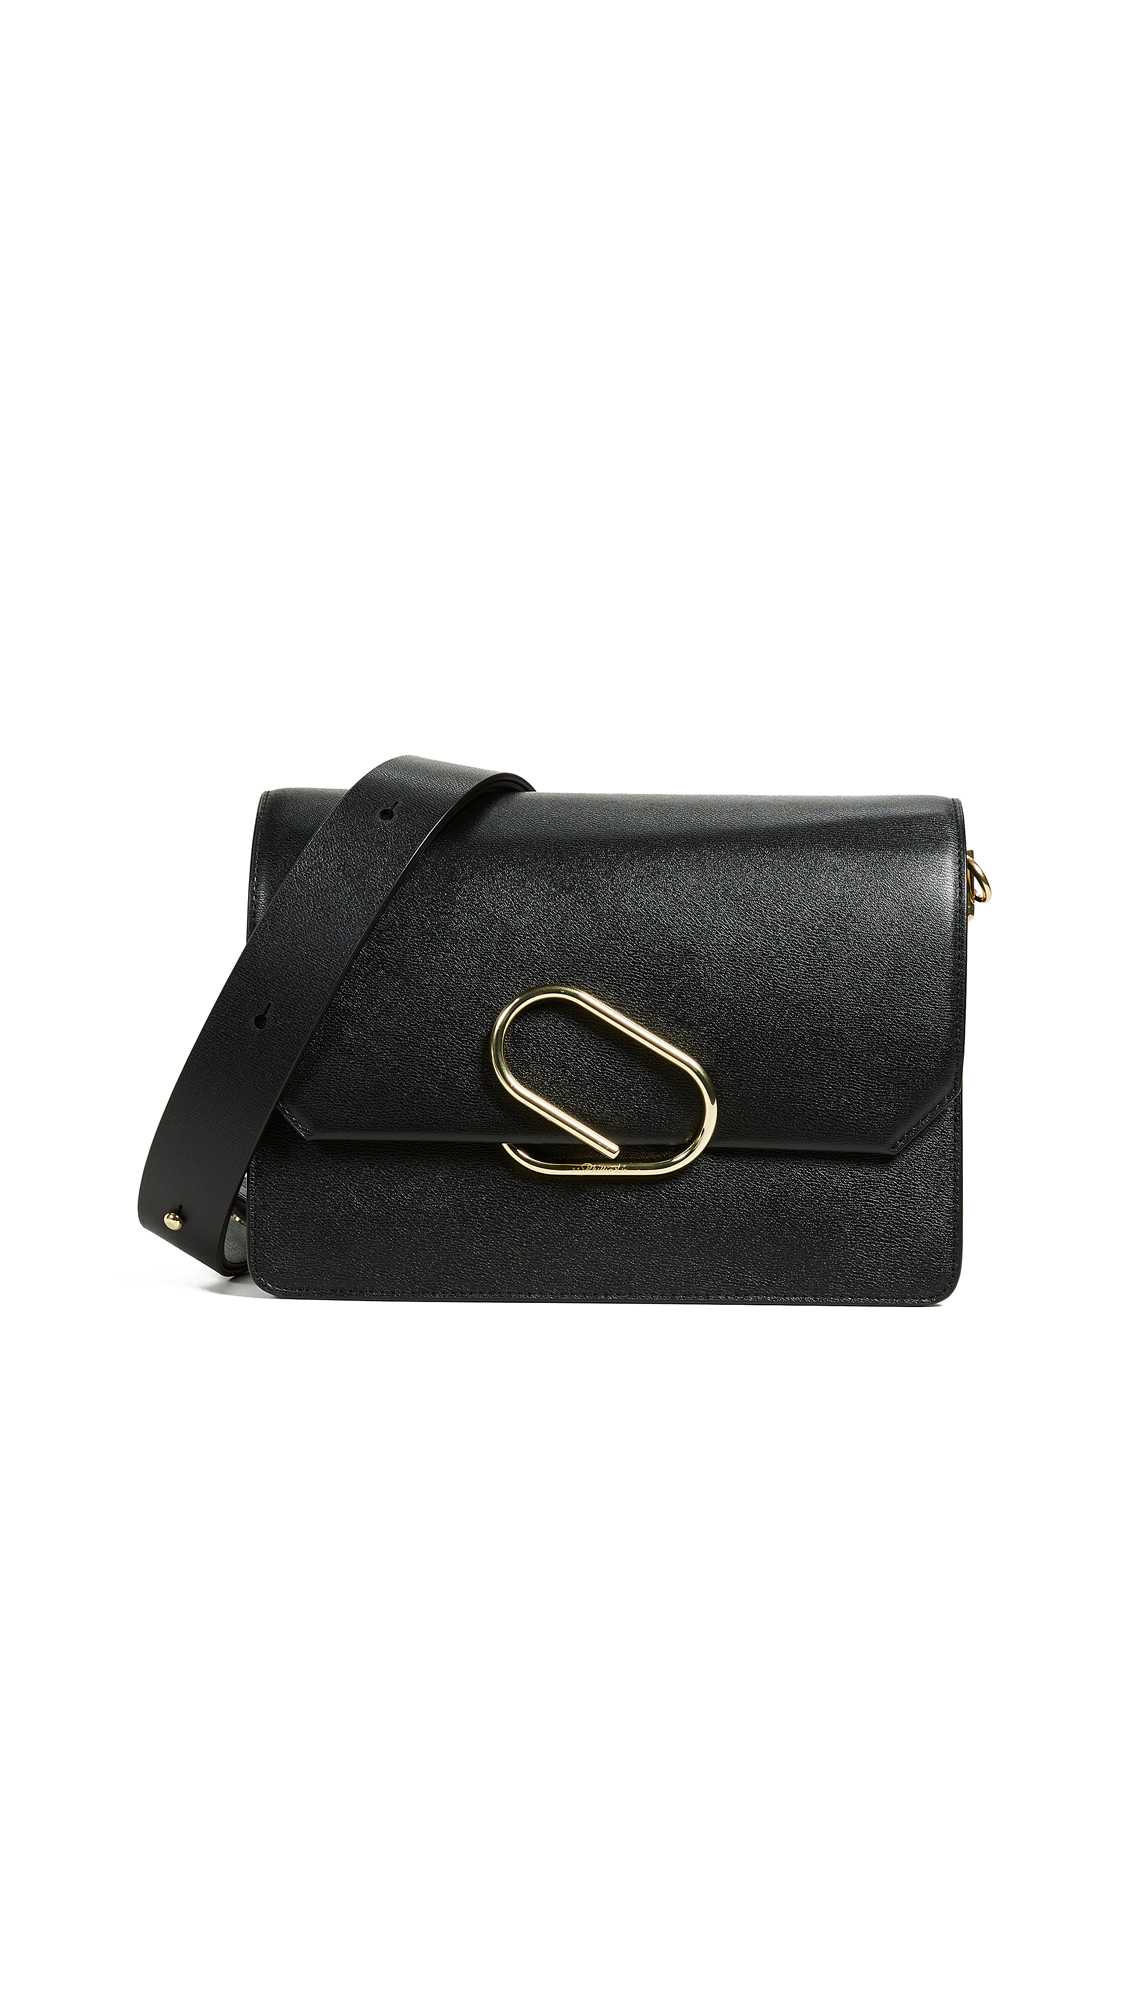 3.1 Phillip Lim Alix Shoulder Bag - Black